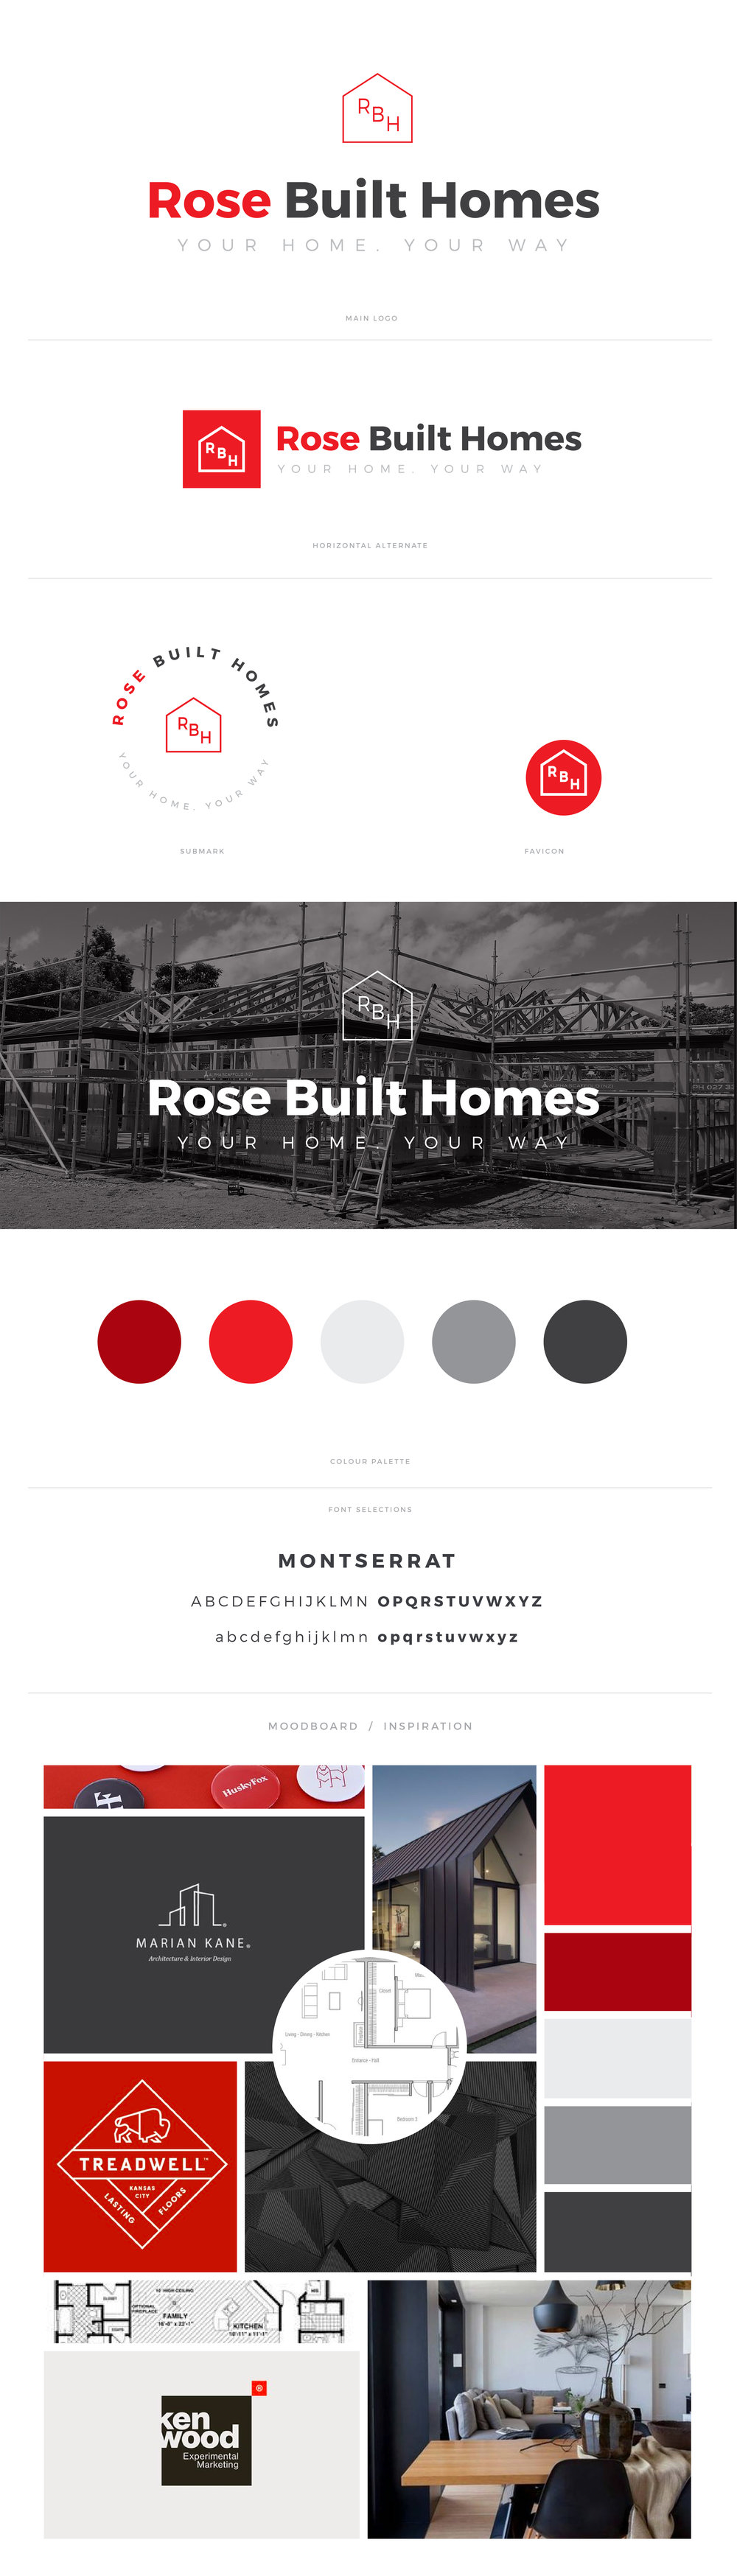 Rosebuilt Homes brand board.